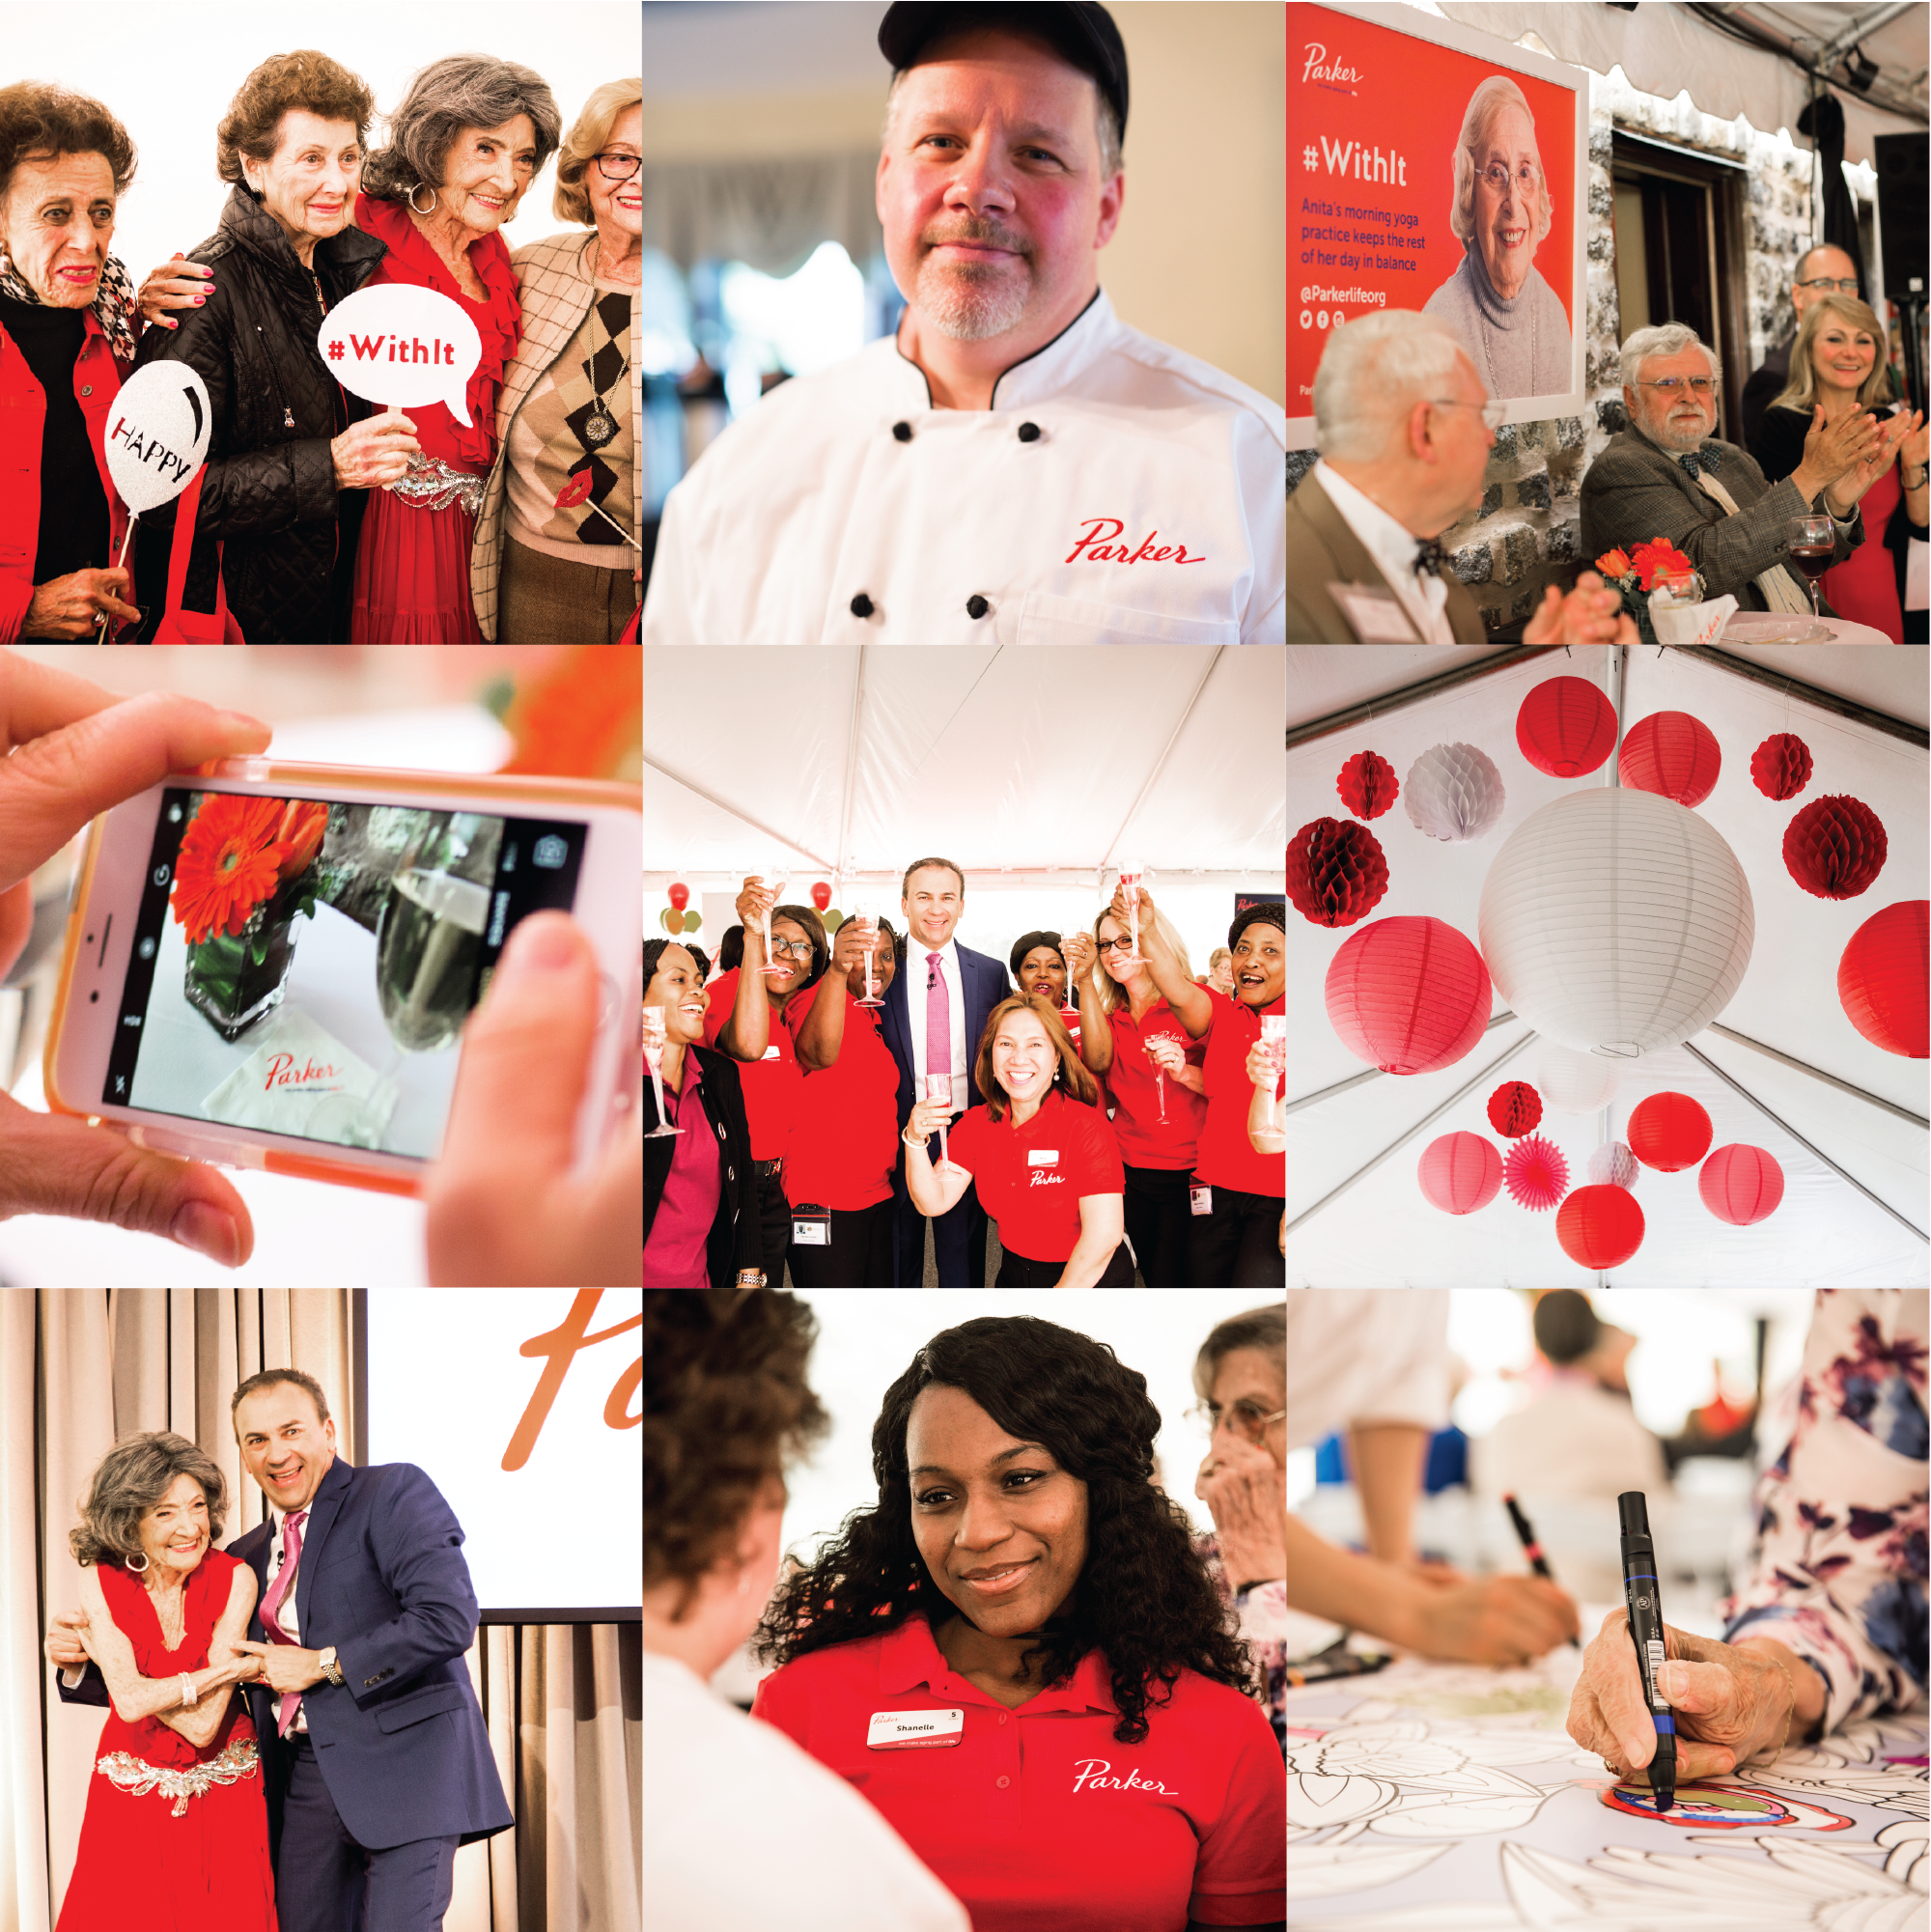 Collage of Parker's 6 brand launch events featuring residents, staff, and the broader community.